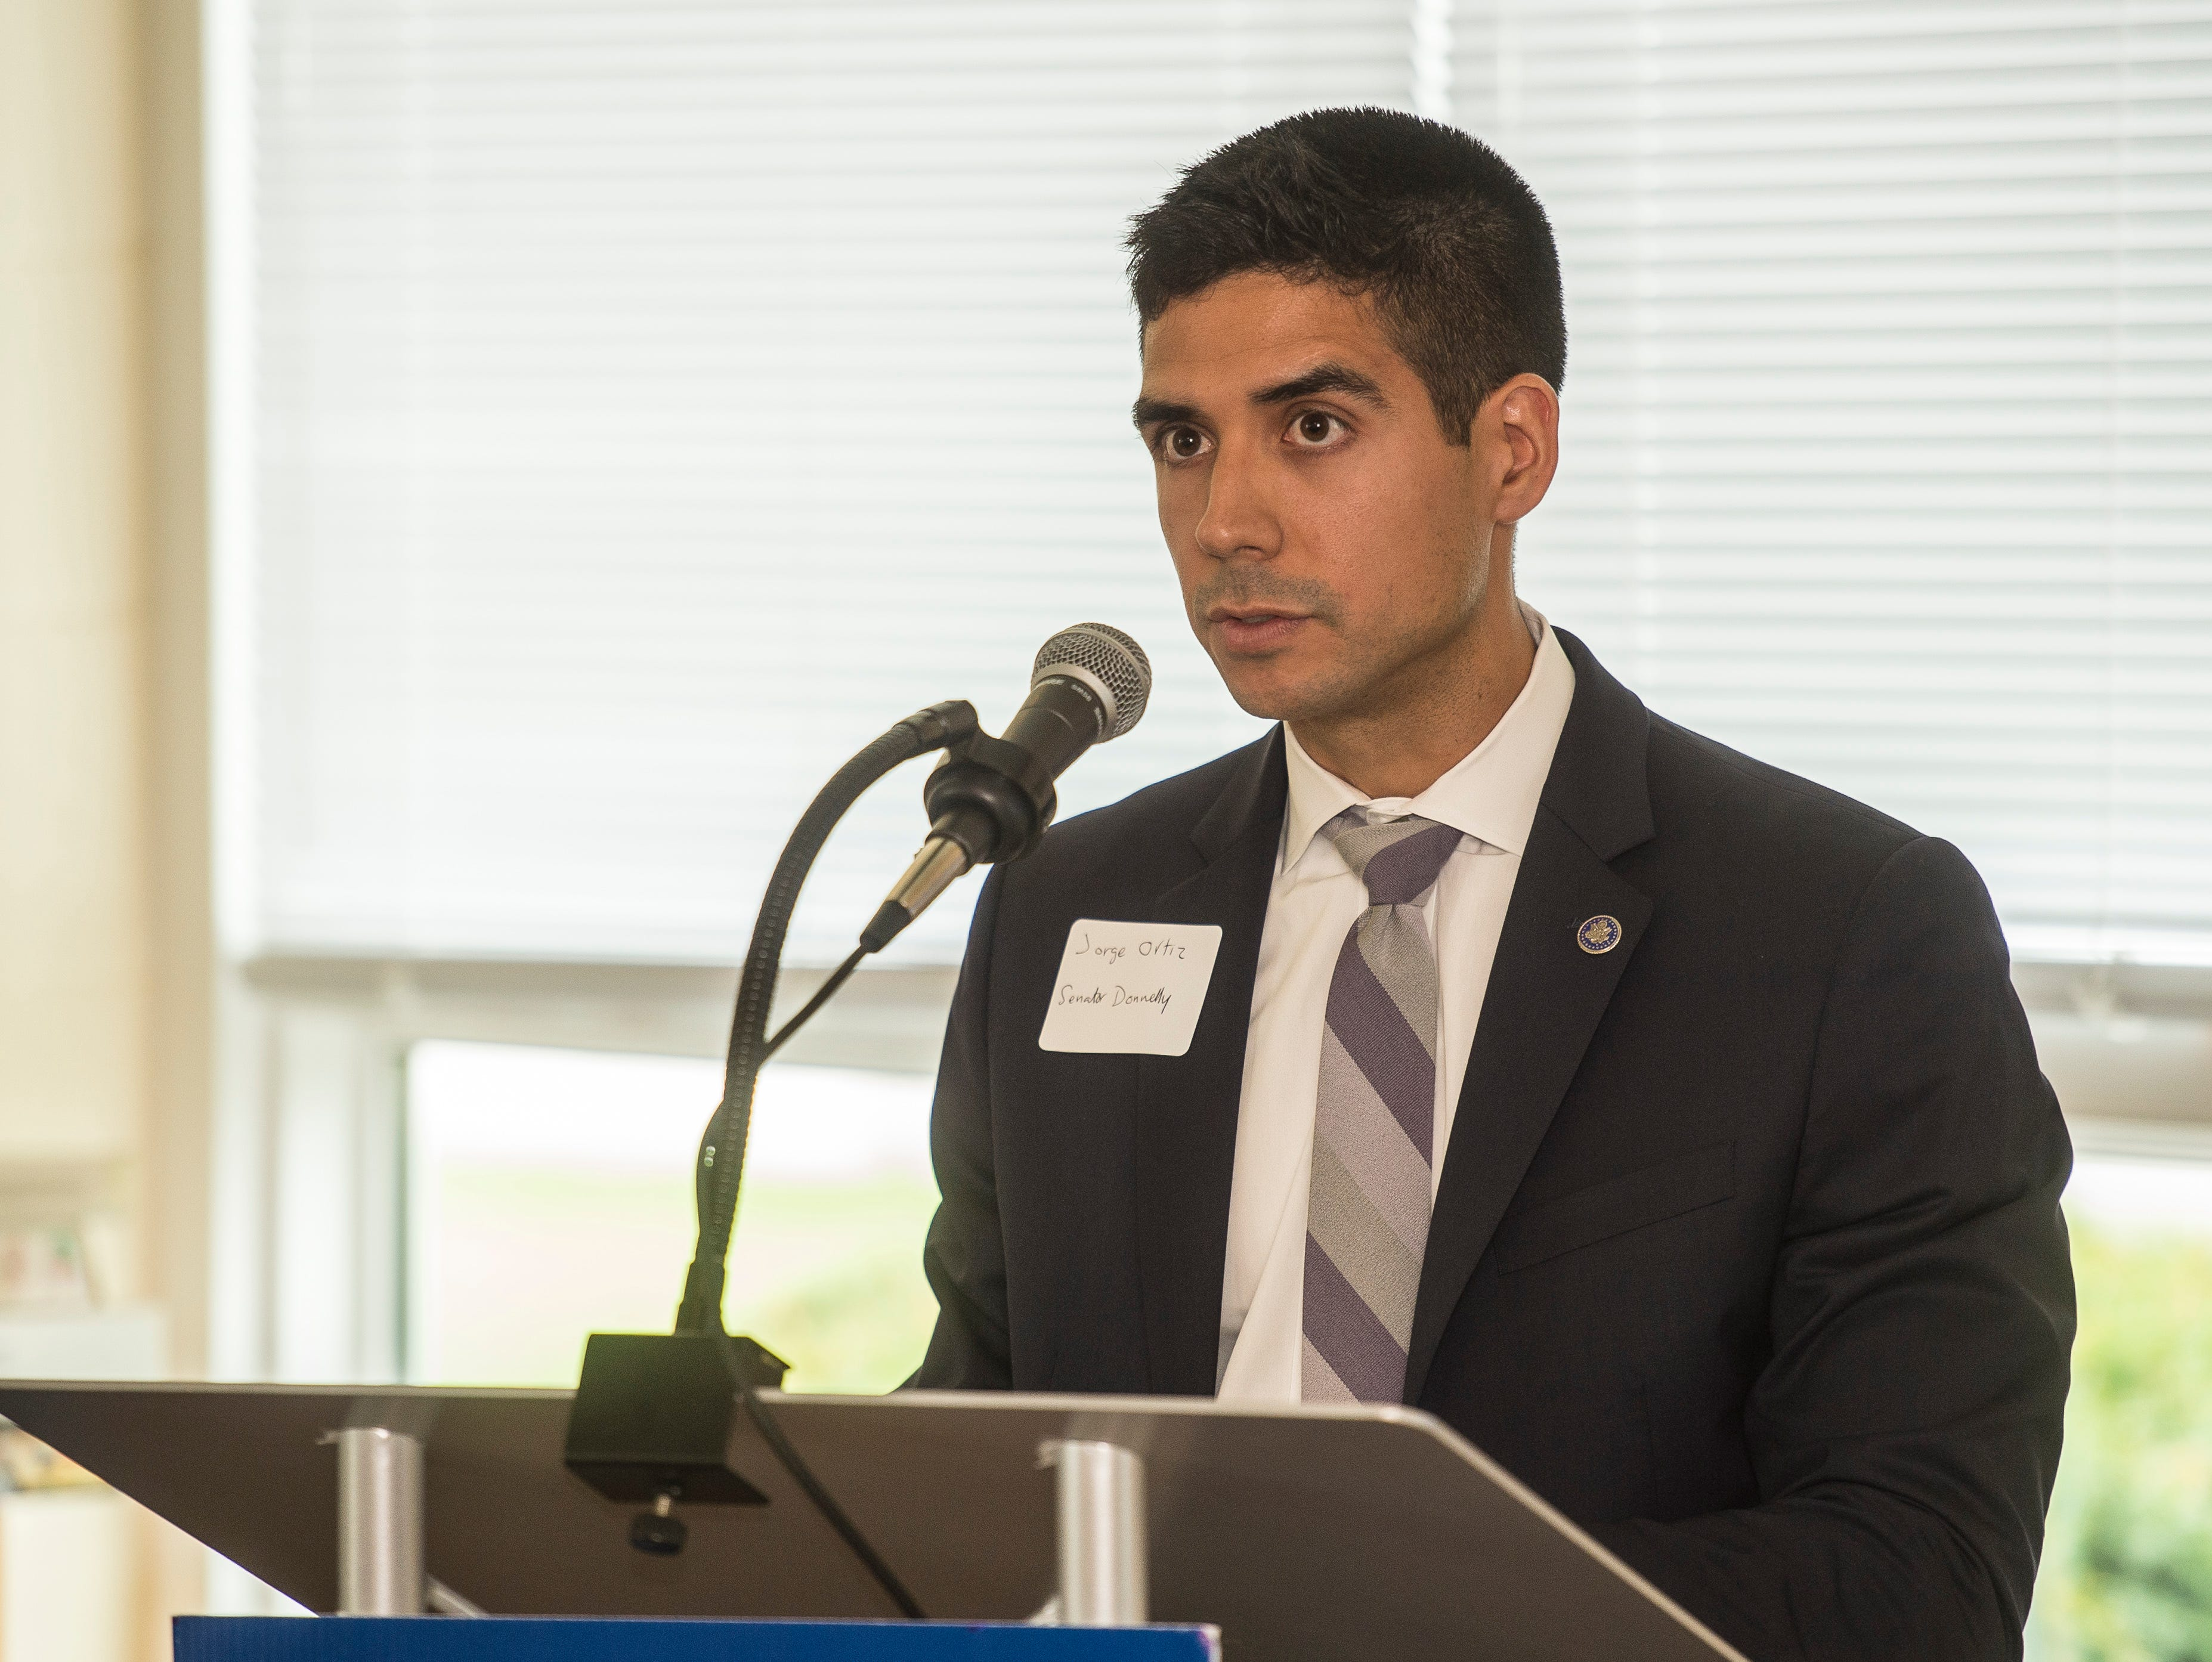 Jorge Ortiz with the office of U.S. Sen. Joe Donnelly speaks during a news conference celebrating the opening of the Winchester House, a new drug treatment facility for women, in Winchester, Ind., on Wednesday, Aug. 1, 2018.